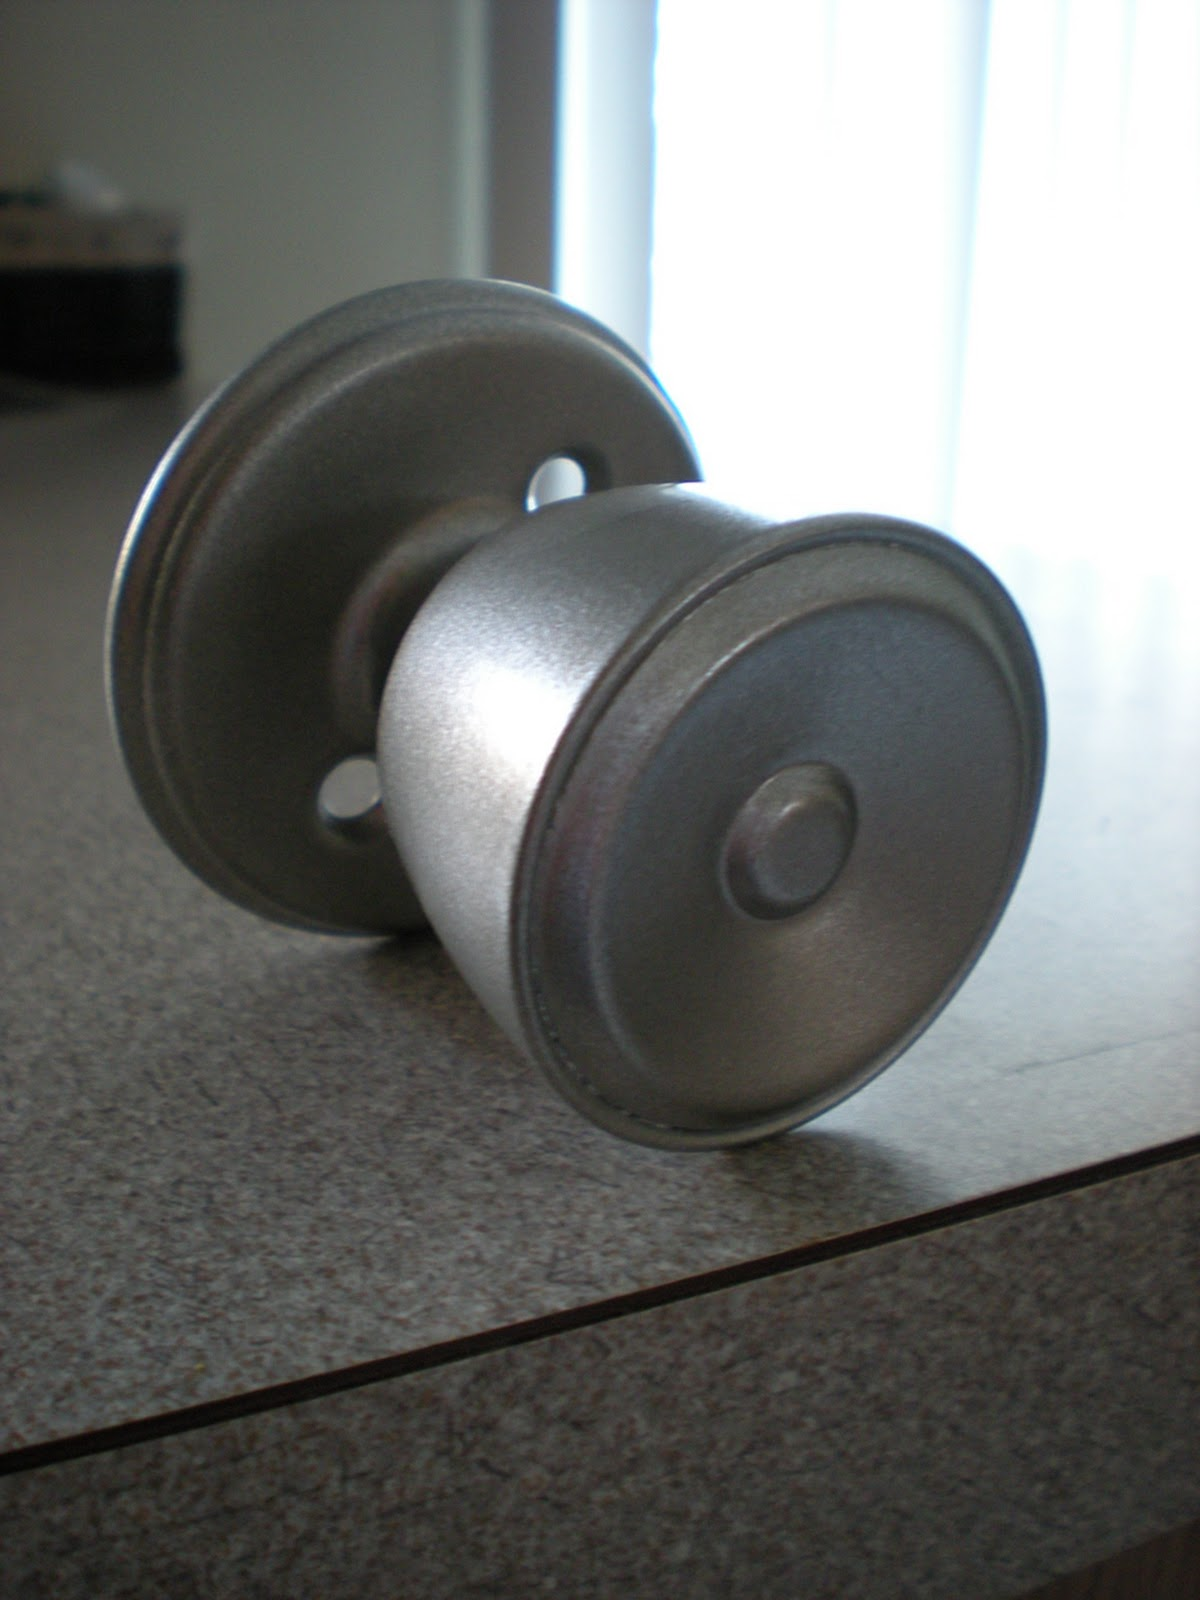 Brushed Nickel Door Knobs | Lowes Front Door Handles | Closet Door Knobs